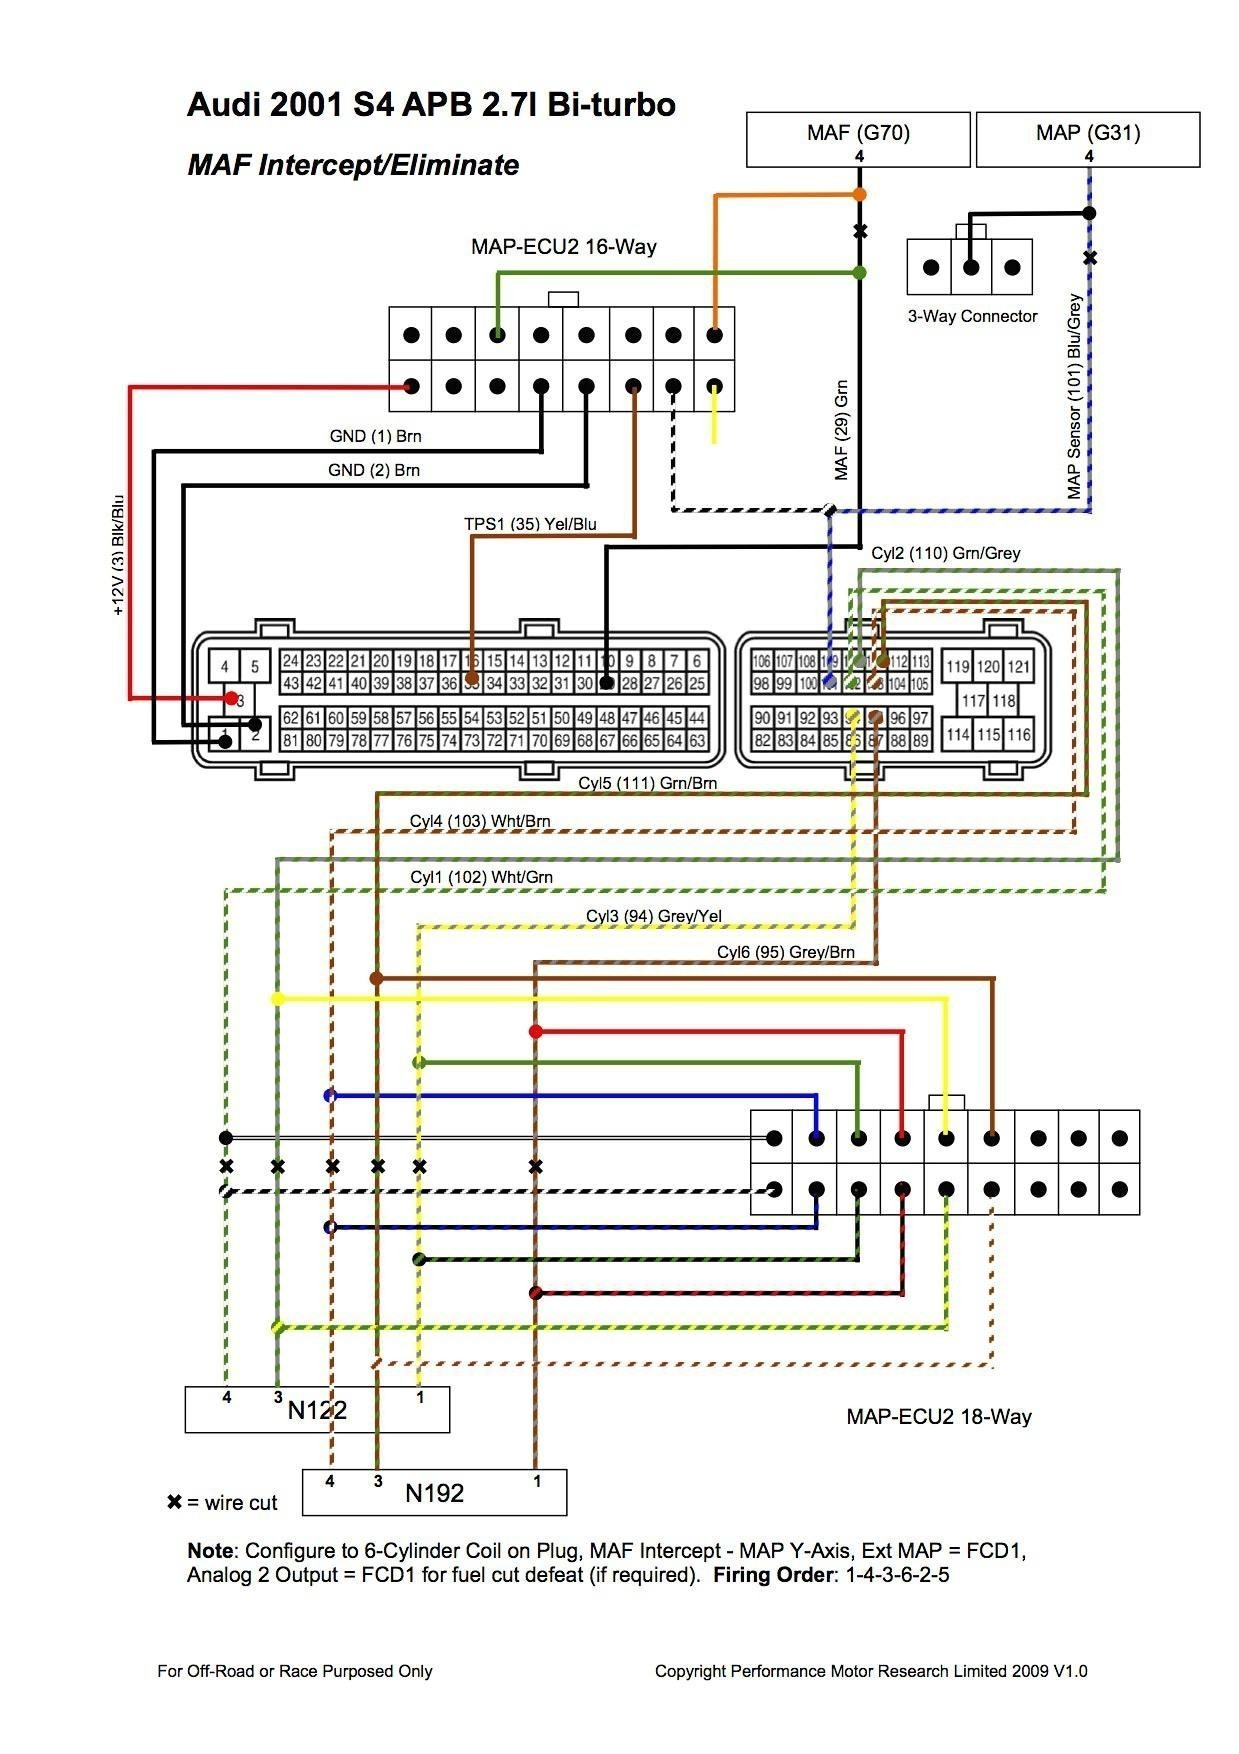 Free Wiring Diagrams for Dodge Trucks Dodge Truck Electrical Diagrams Schema Wiring Diagram Of Free Wiring Diagrams for Dodge Trucks Dodge Truck Wiring Diagram Free Wiring Diagram toolbox